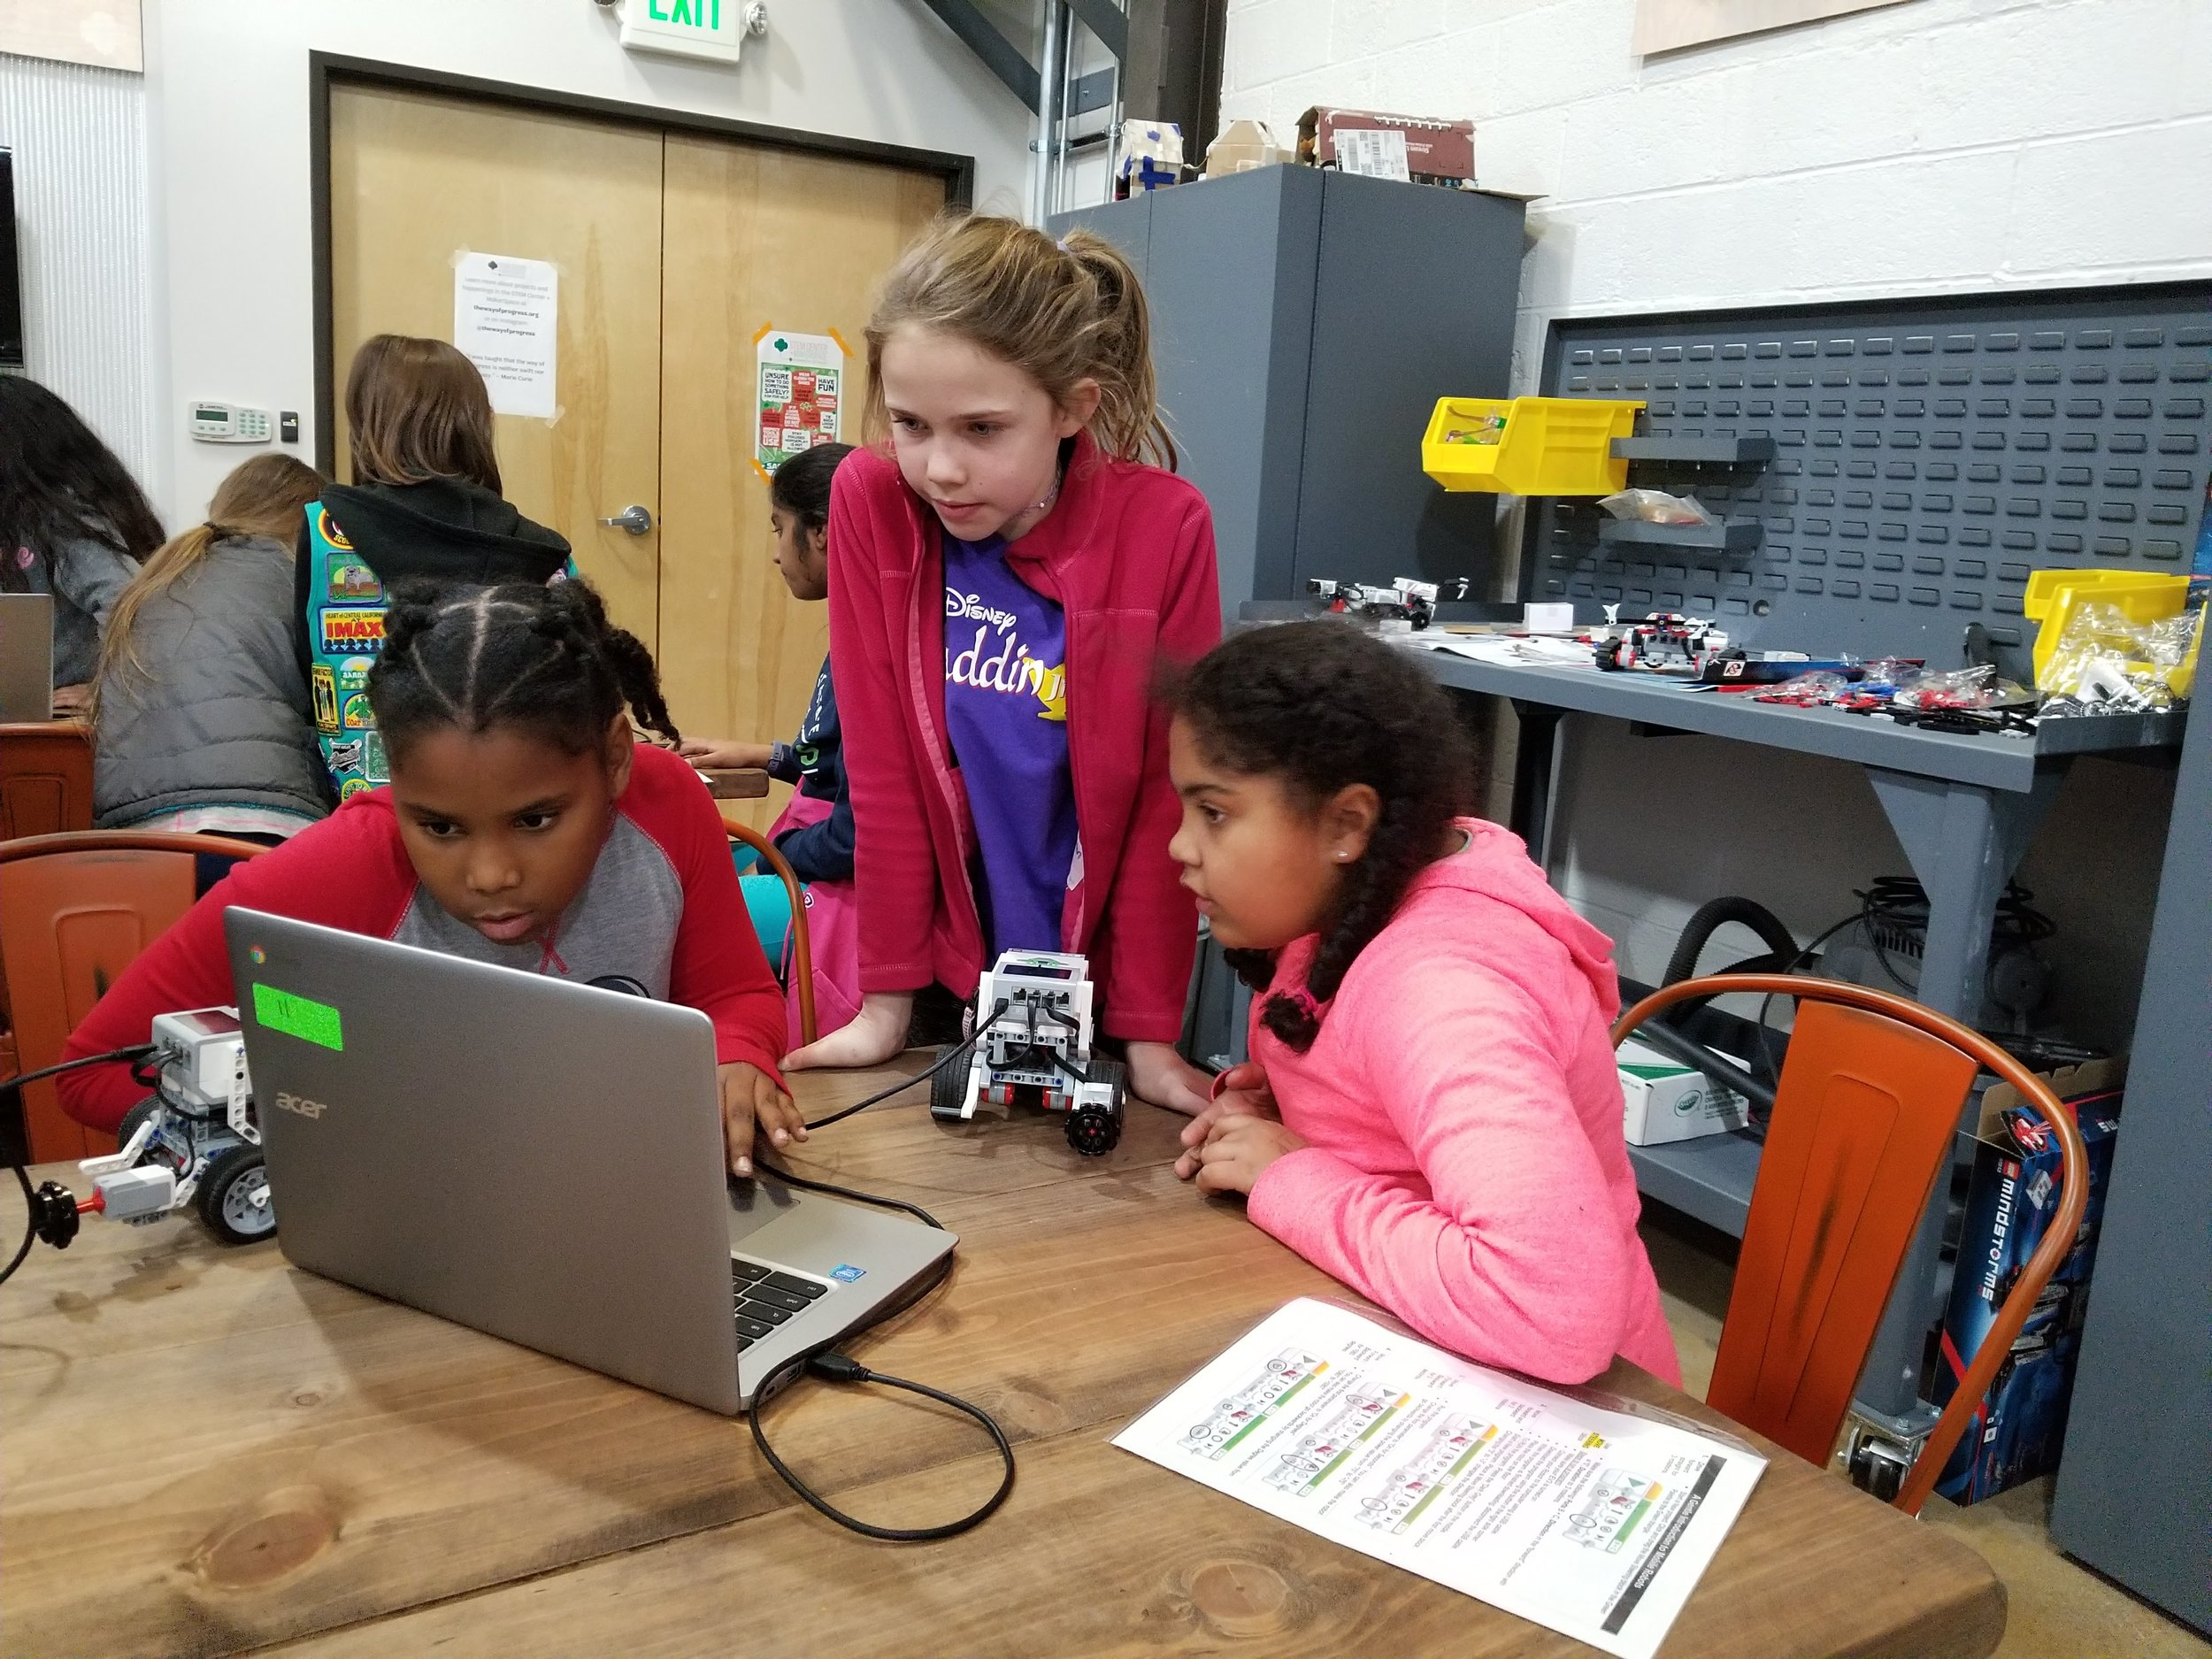 Troubleshooting their robot's programming